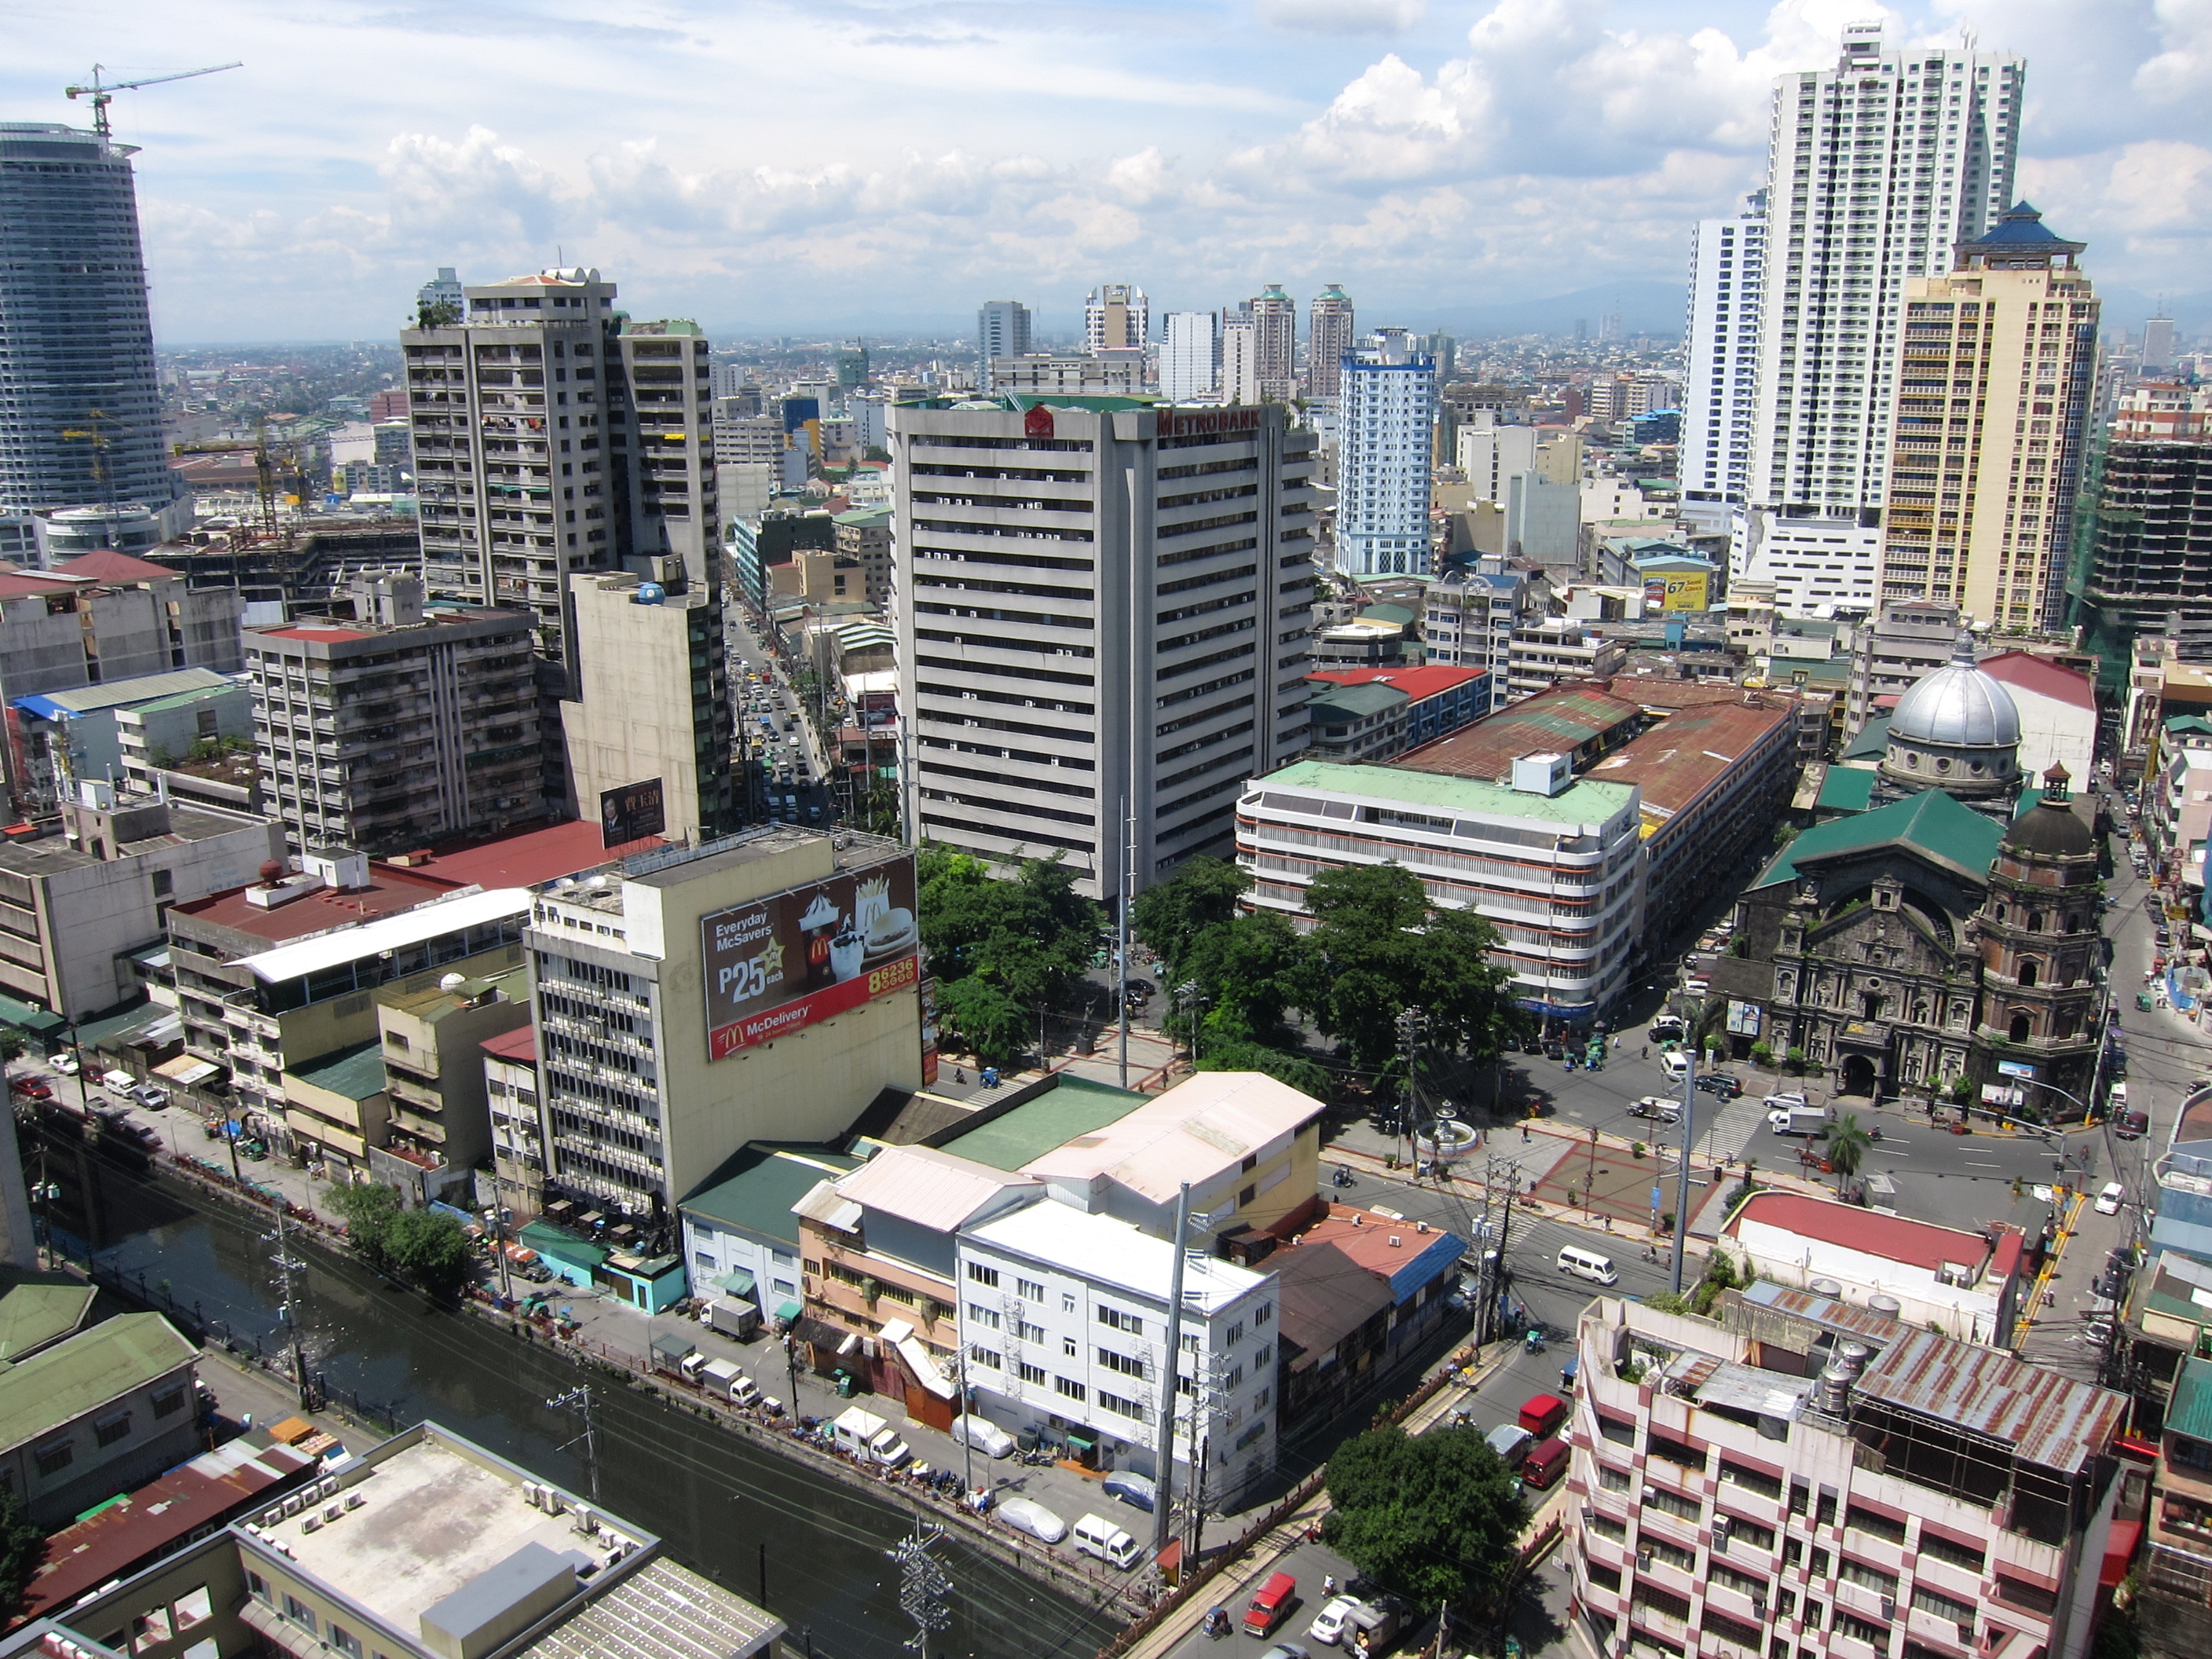 Manila, Philippines (photo credit: GreenArcher04/flickr)